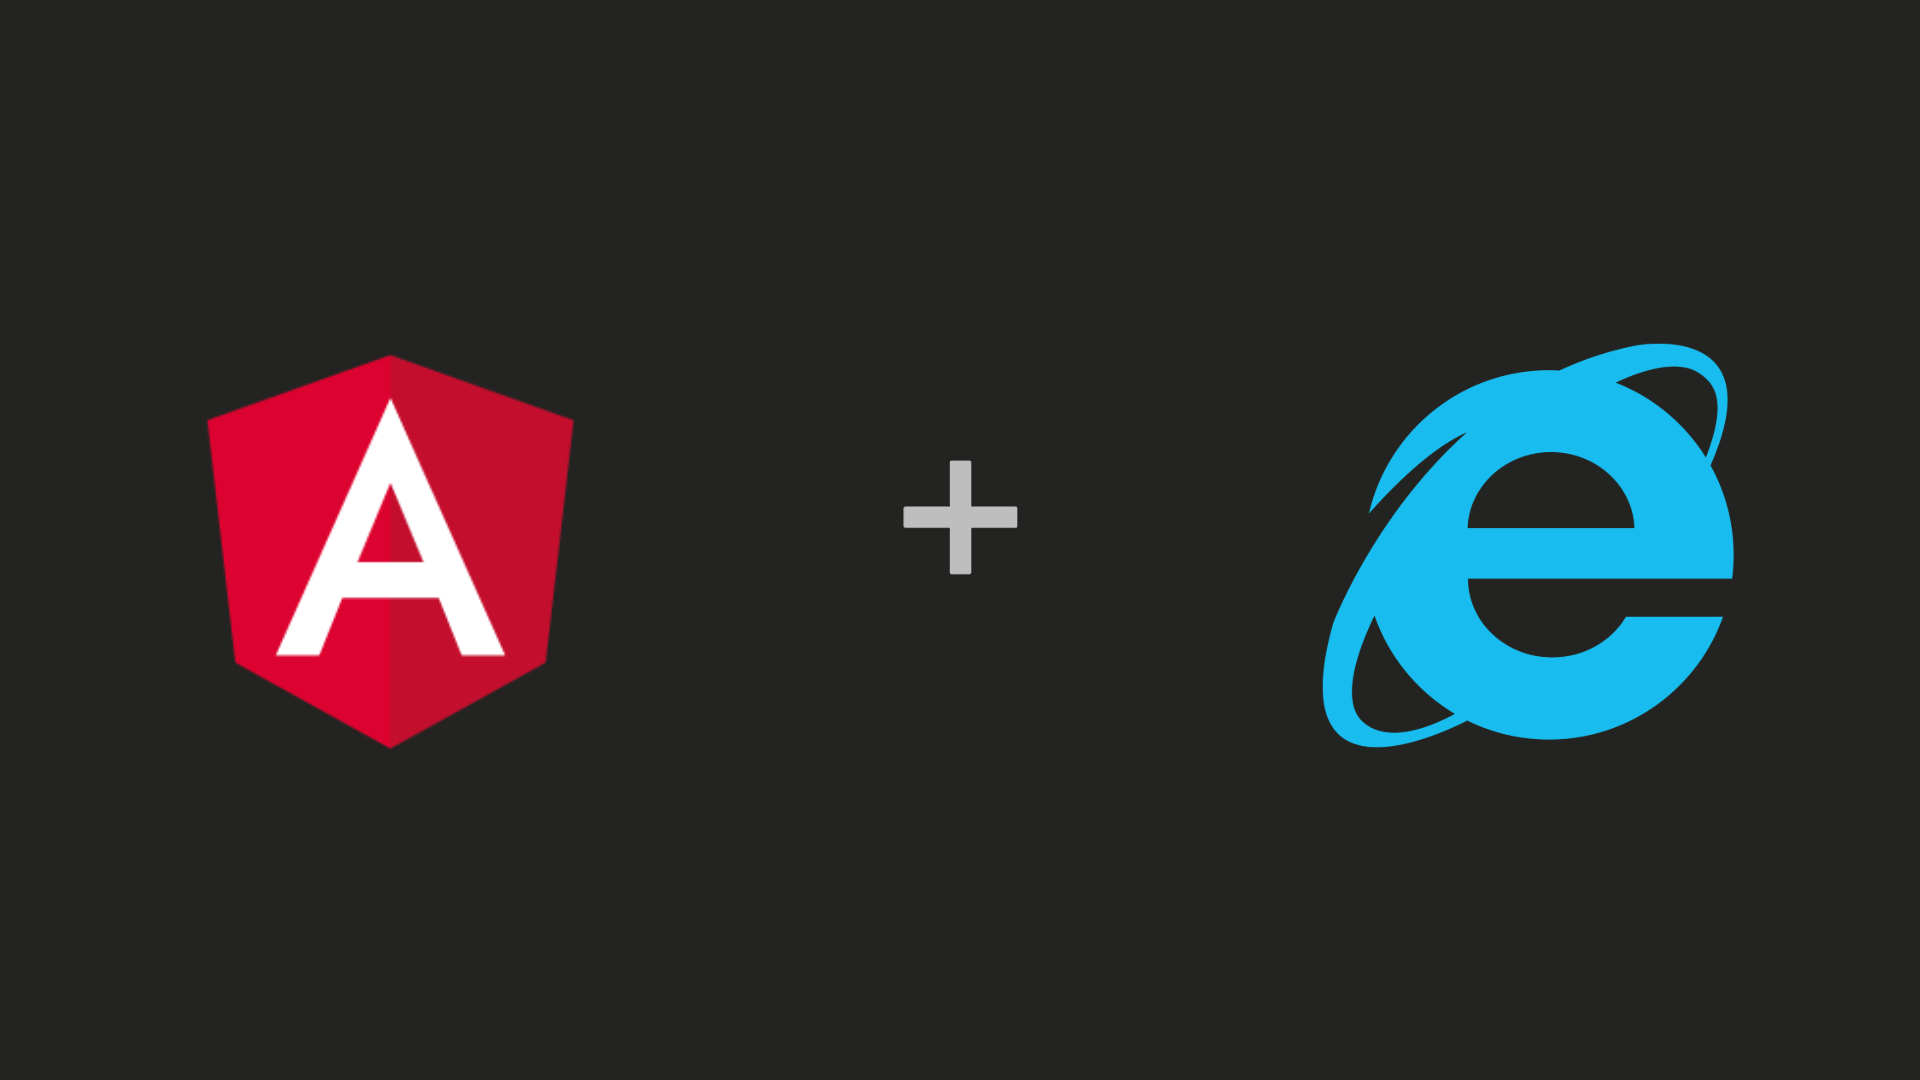 How To Fix Your Angular App When It's Not Working in IE11